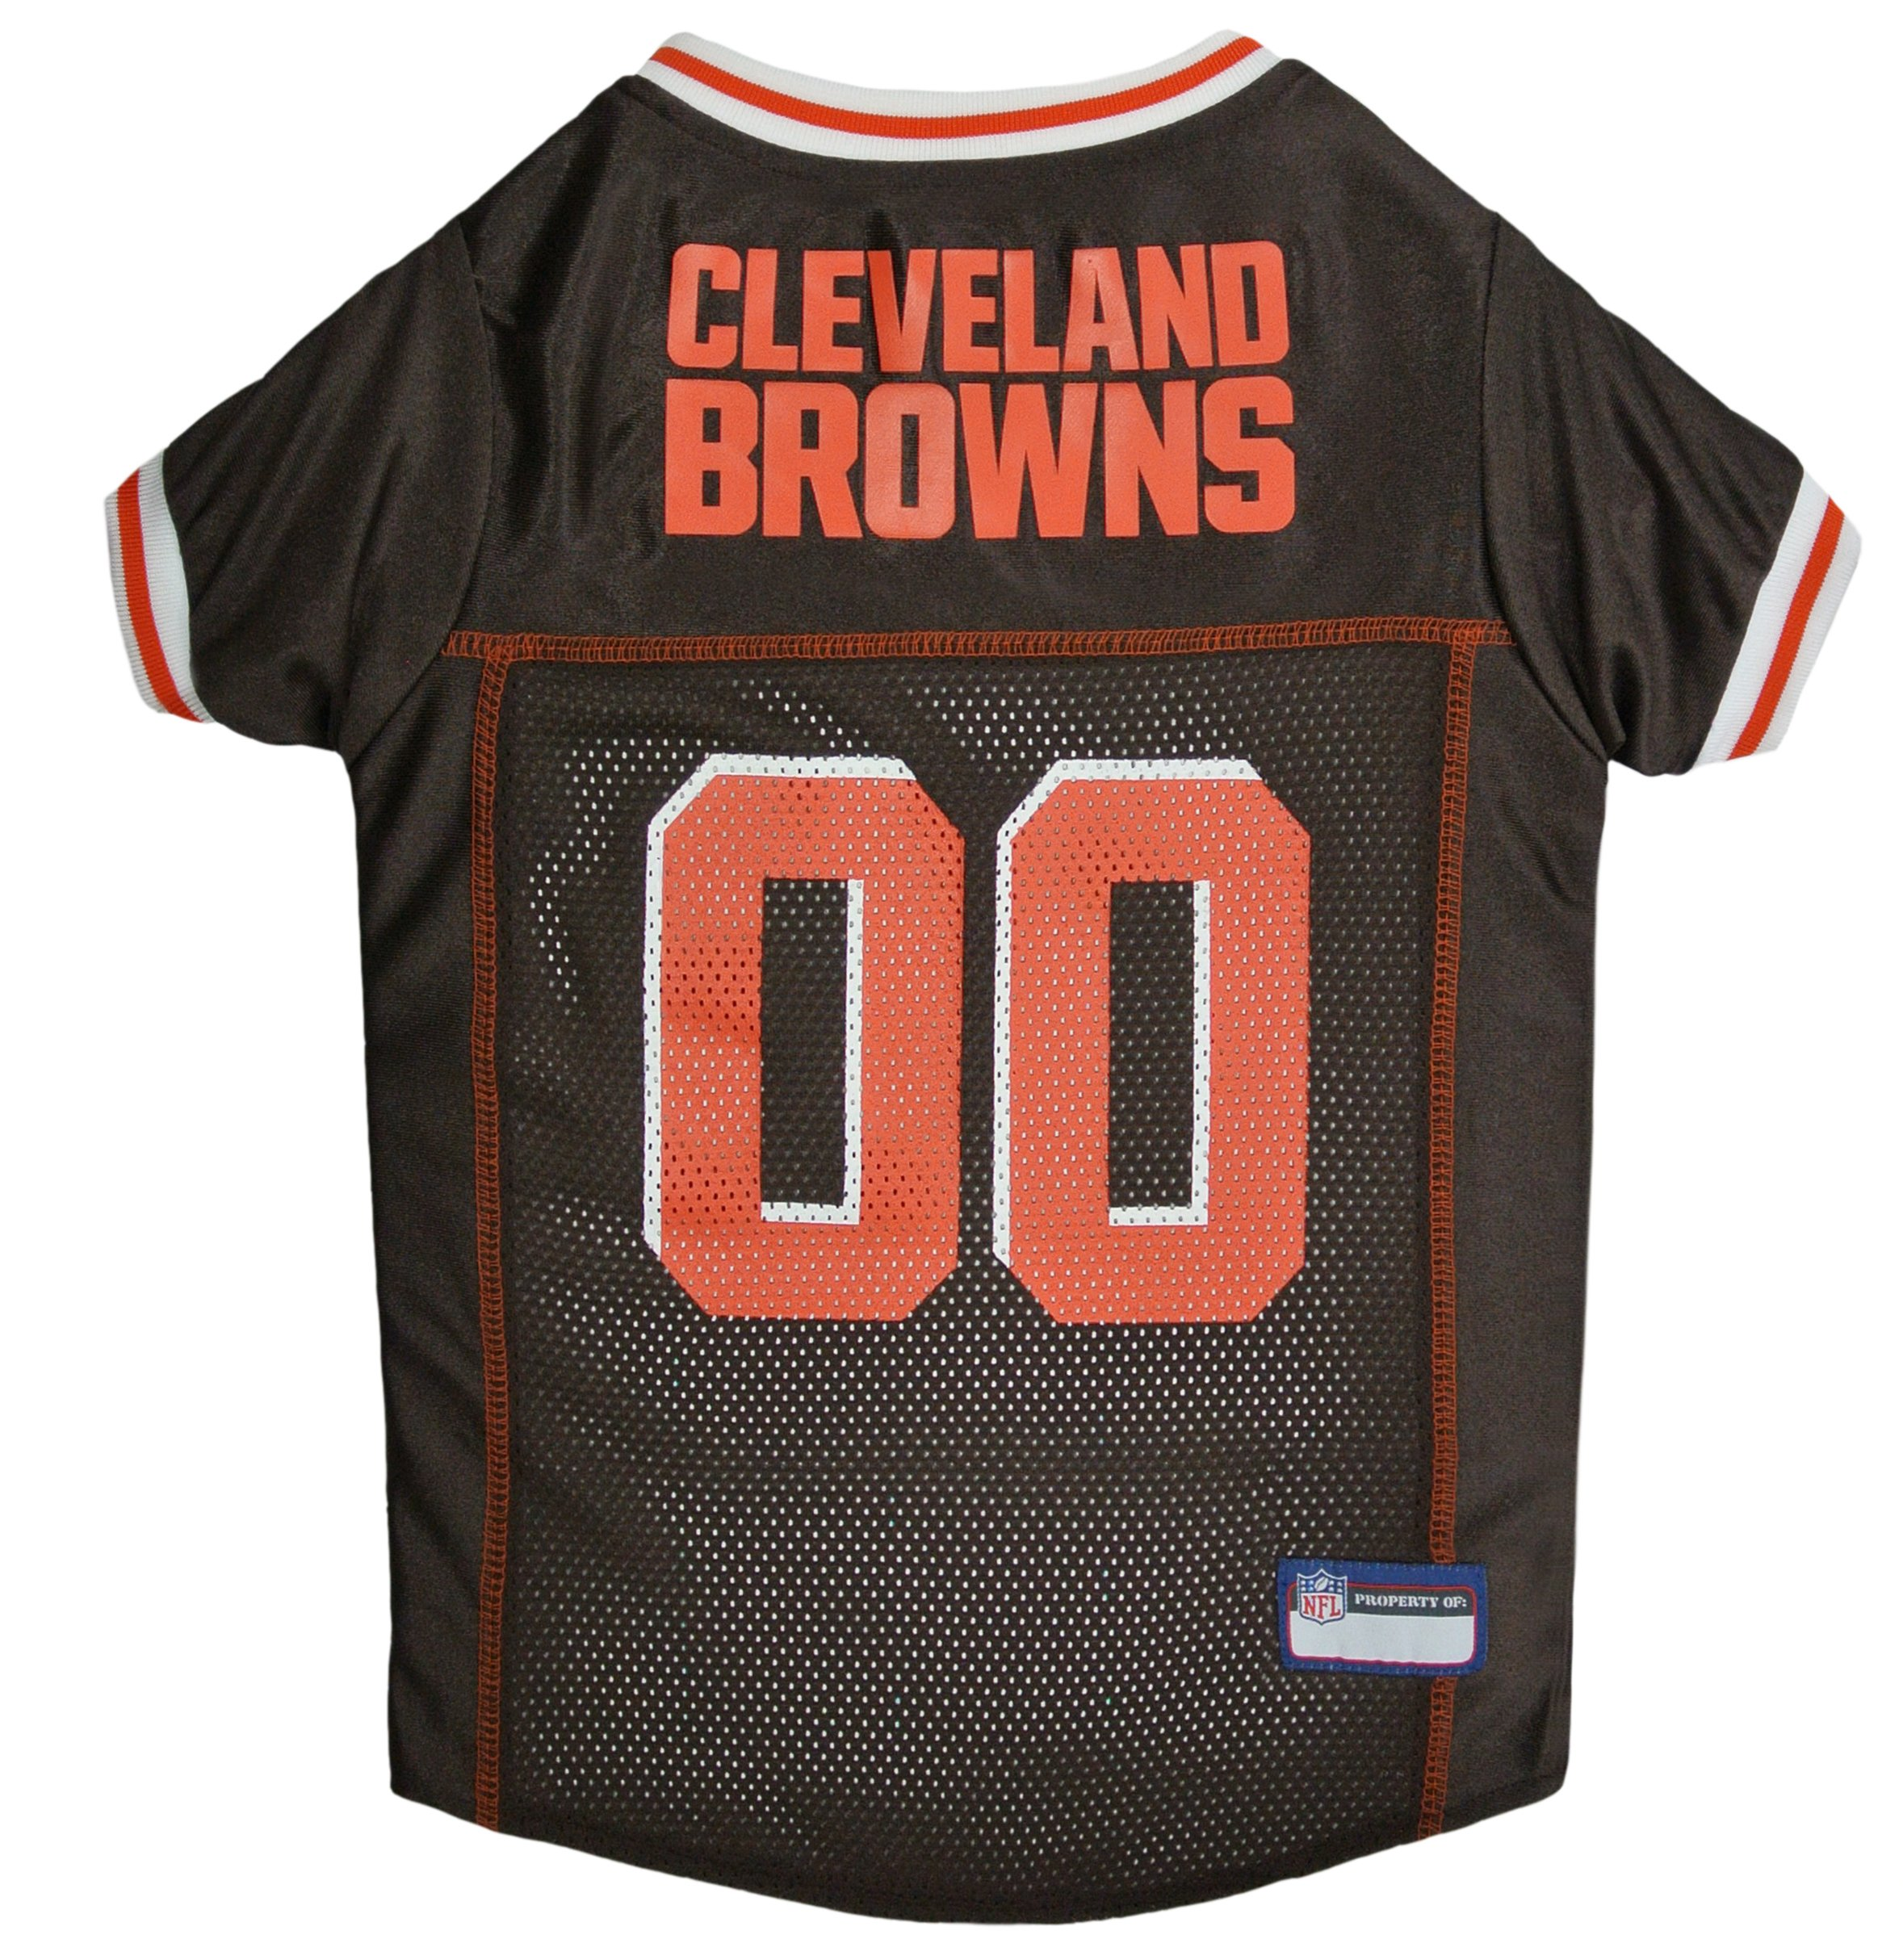 NFL CLEVELAND BROWNS DOG Jersey, X-Large by NFL